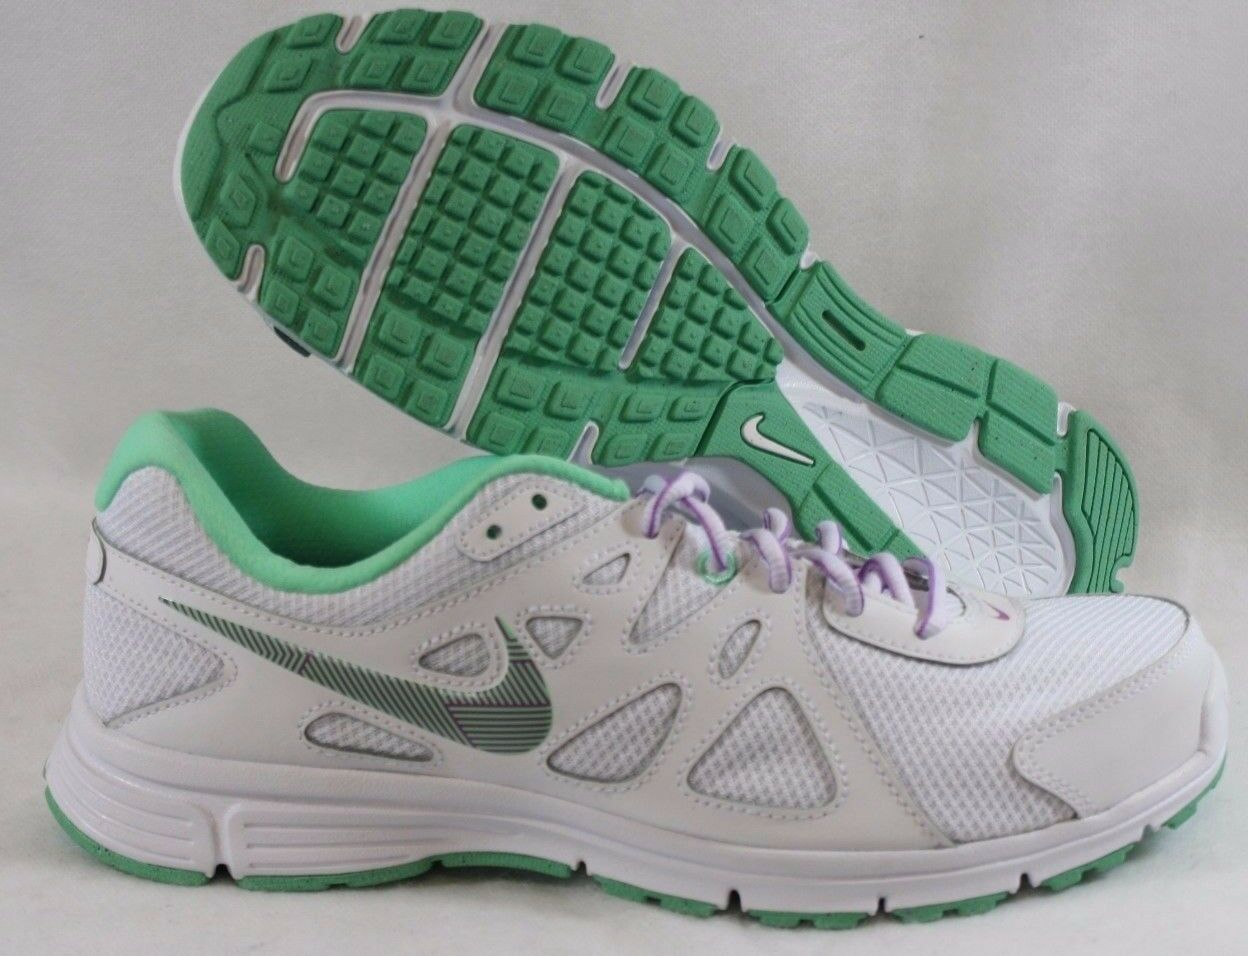 NEW Womens NIKE Revolution 2 554900 104 White Green Sneakers Shoes DISPLAY MODEL